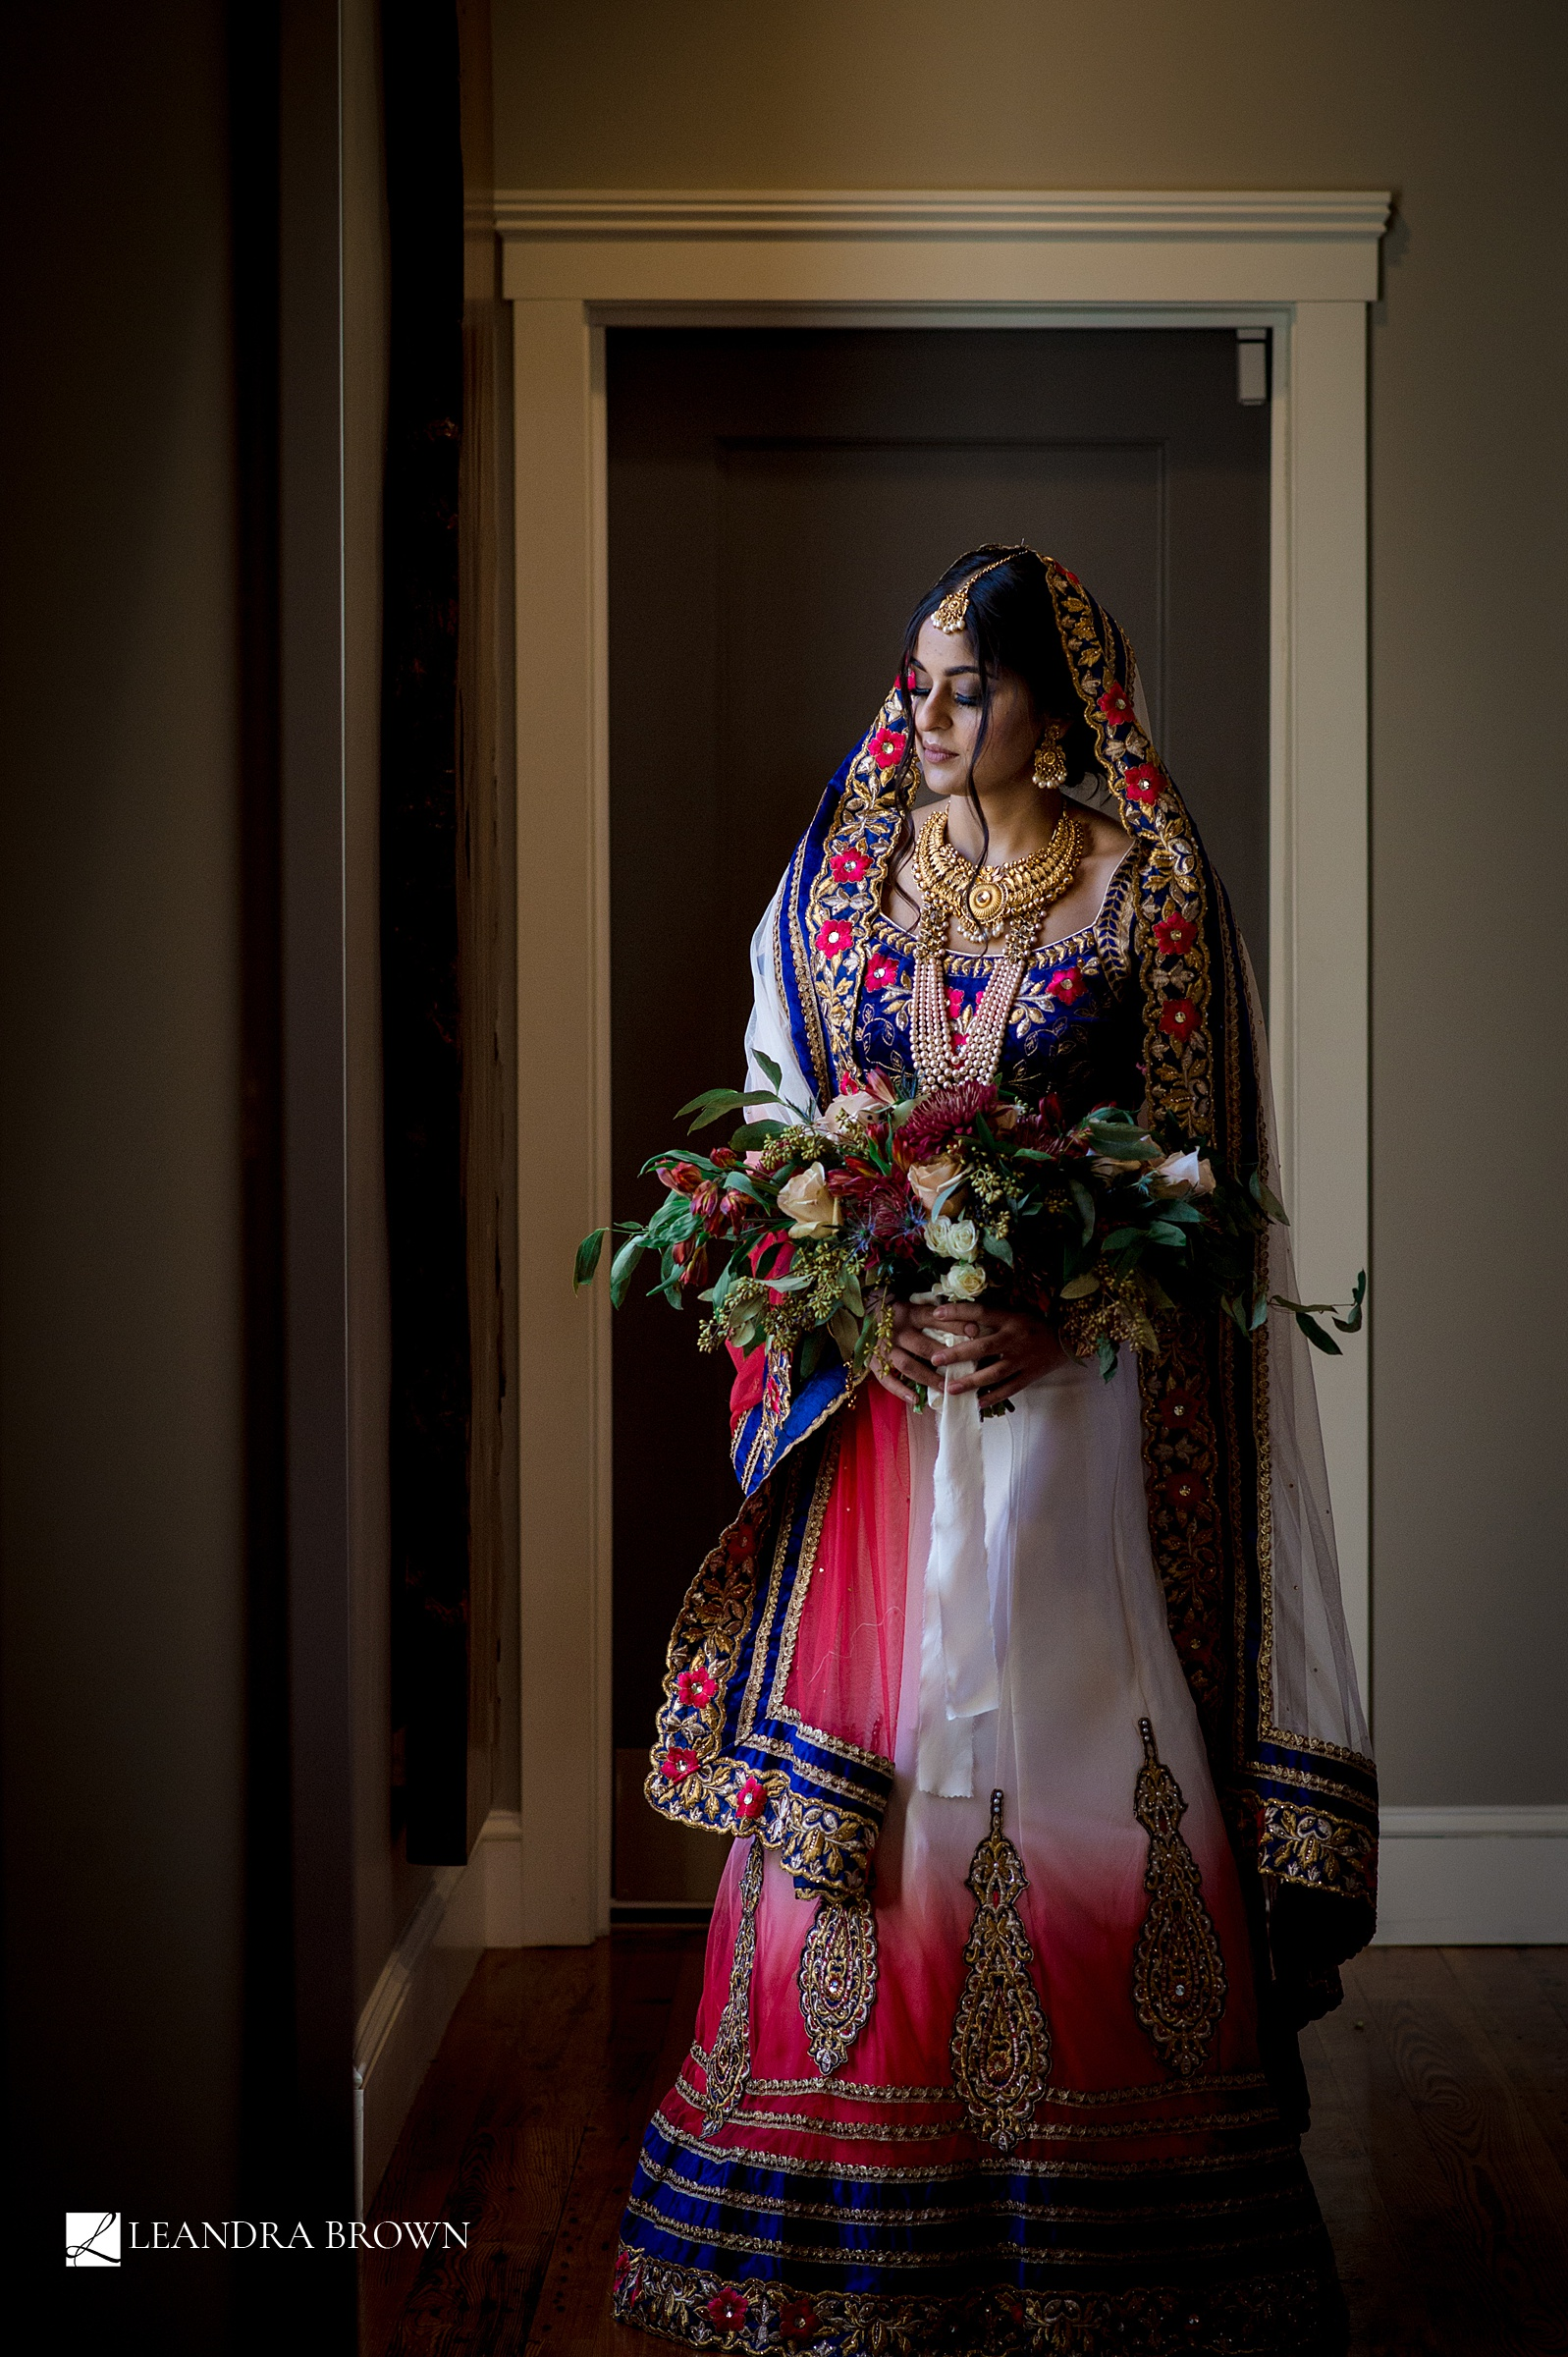 South Asian Wedding Photography.LeandraBrownPhotography_0045.jpg